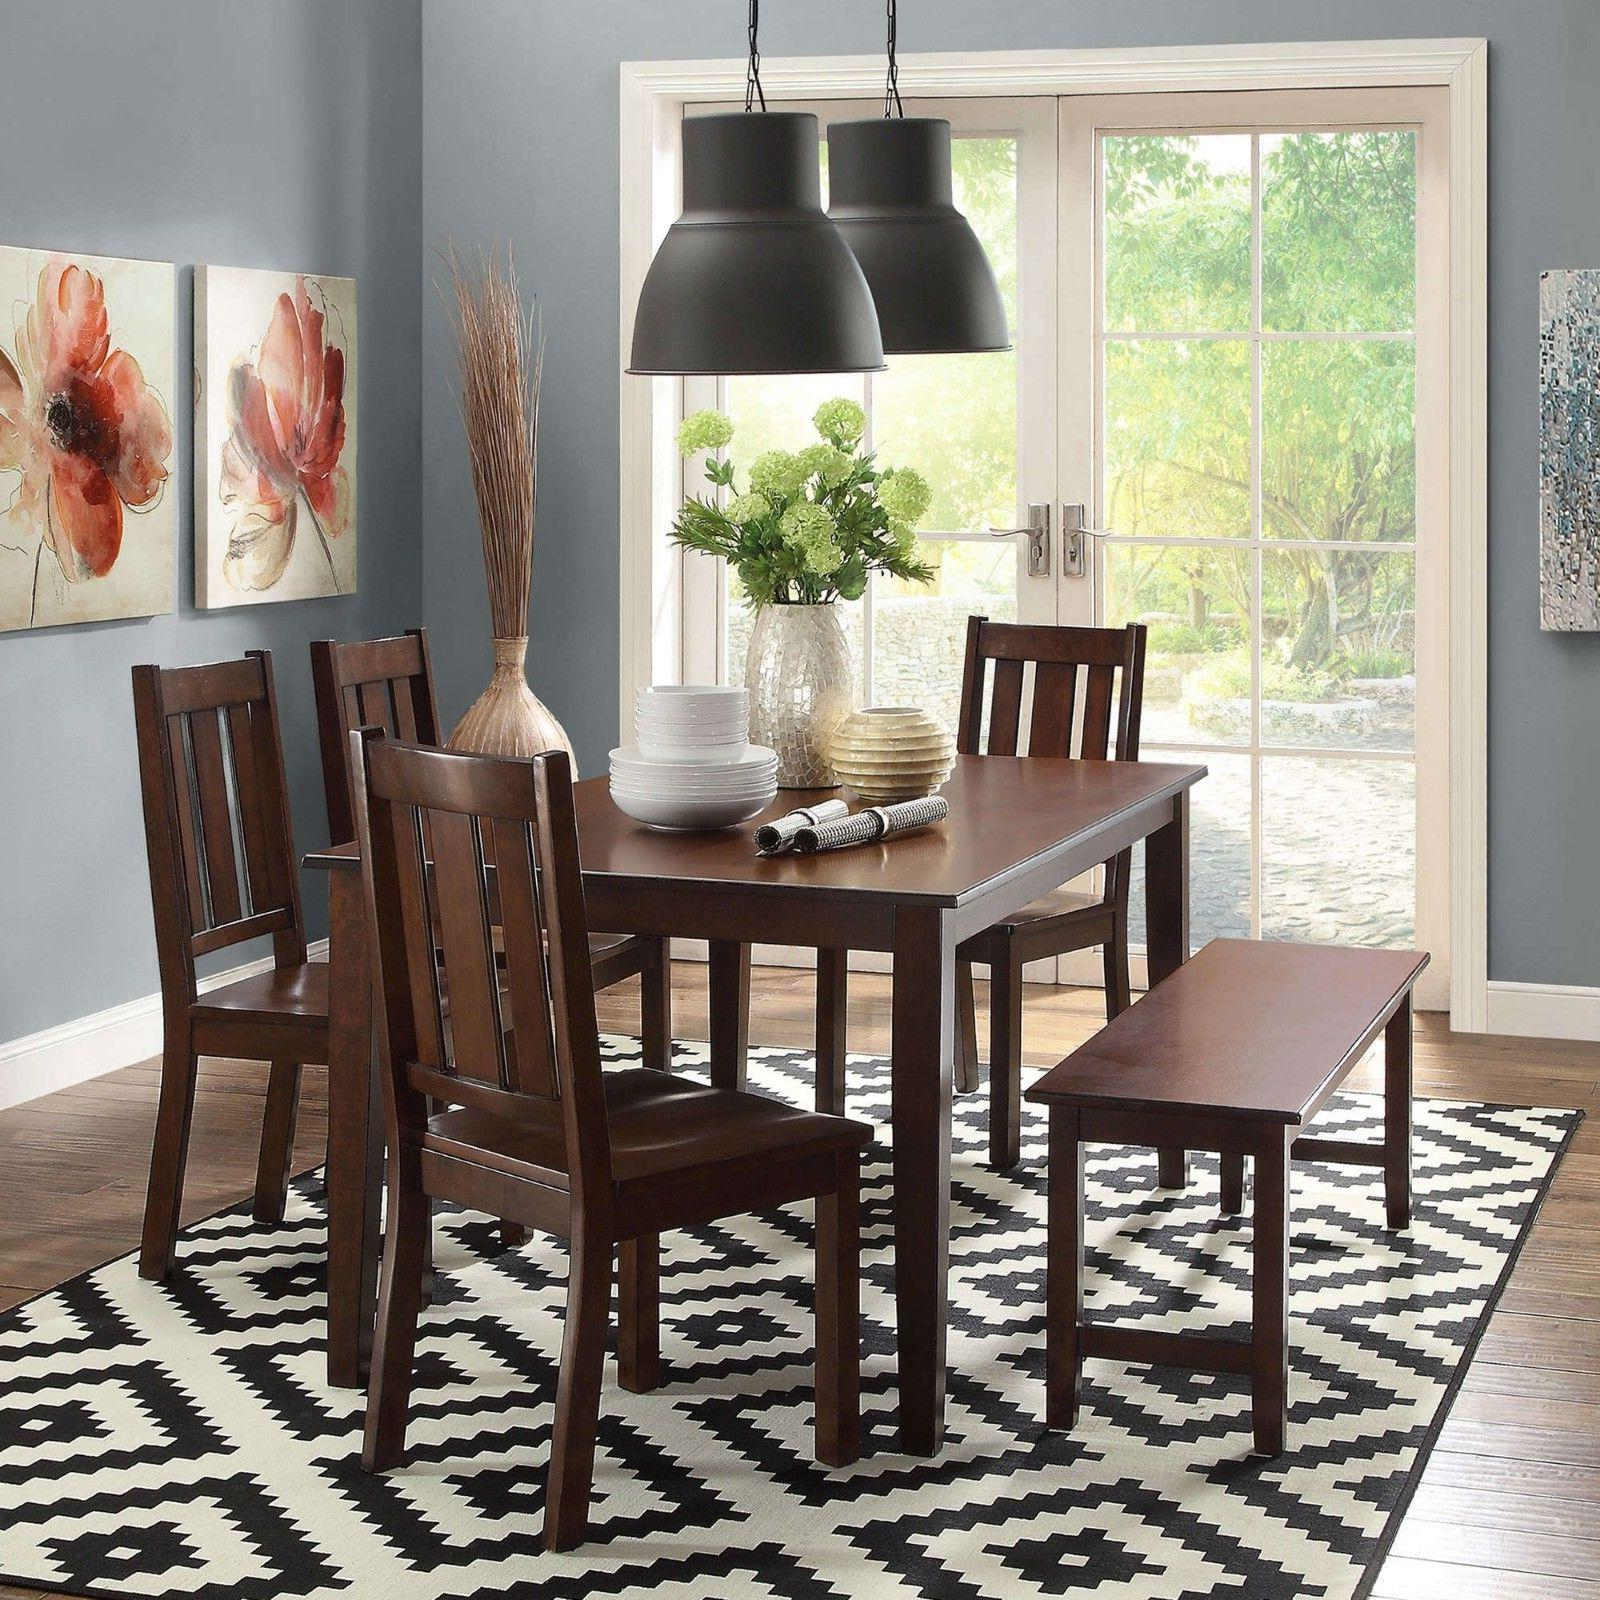 7 Home Table Chairs Style Mocha Solid